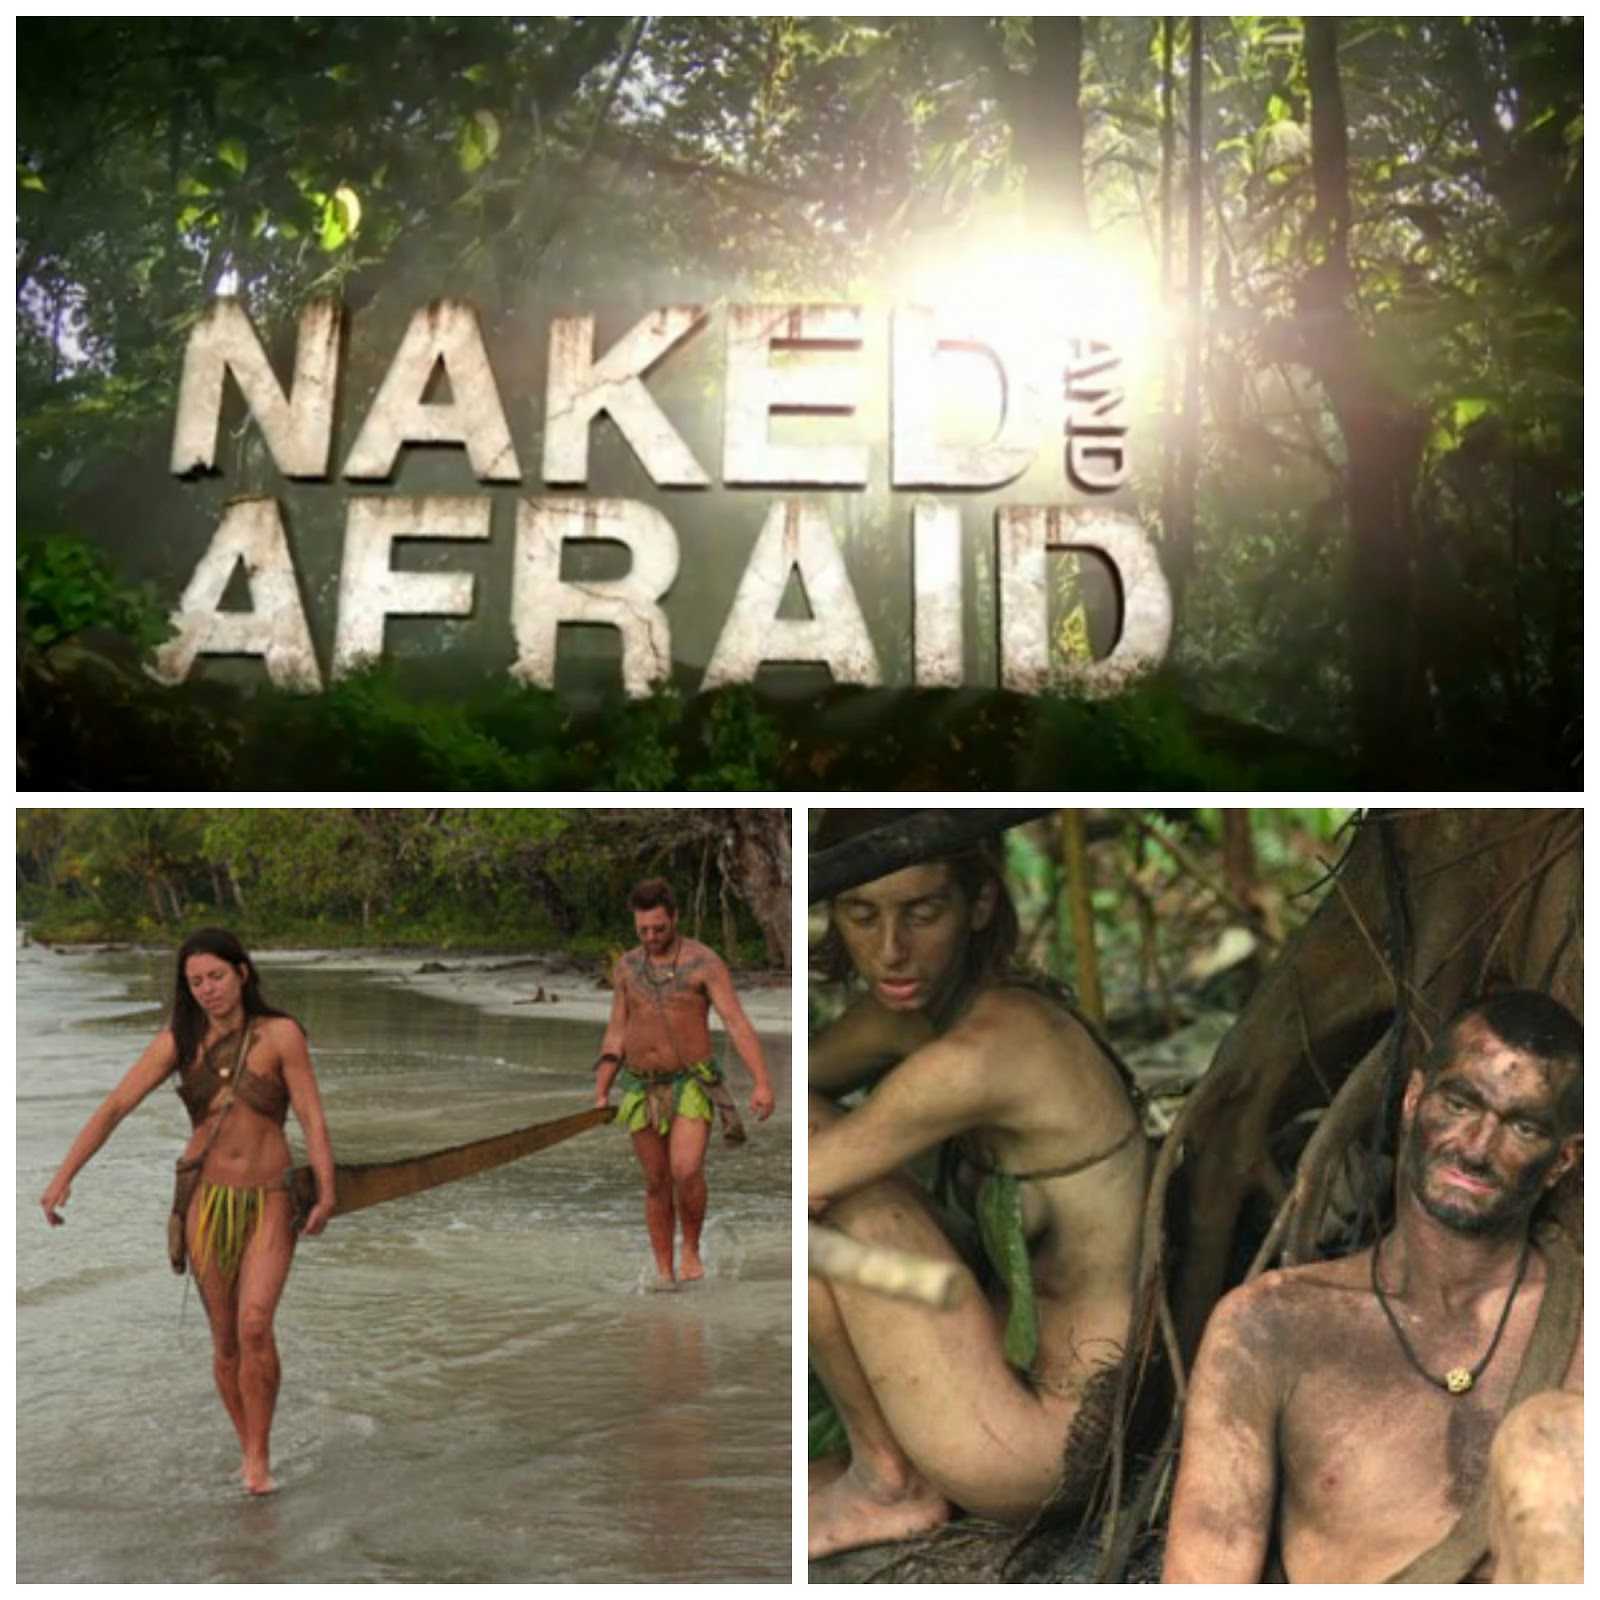 Kim Naked And Afraid